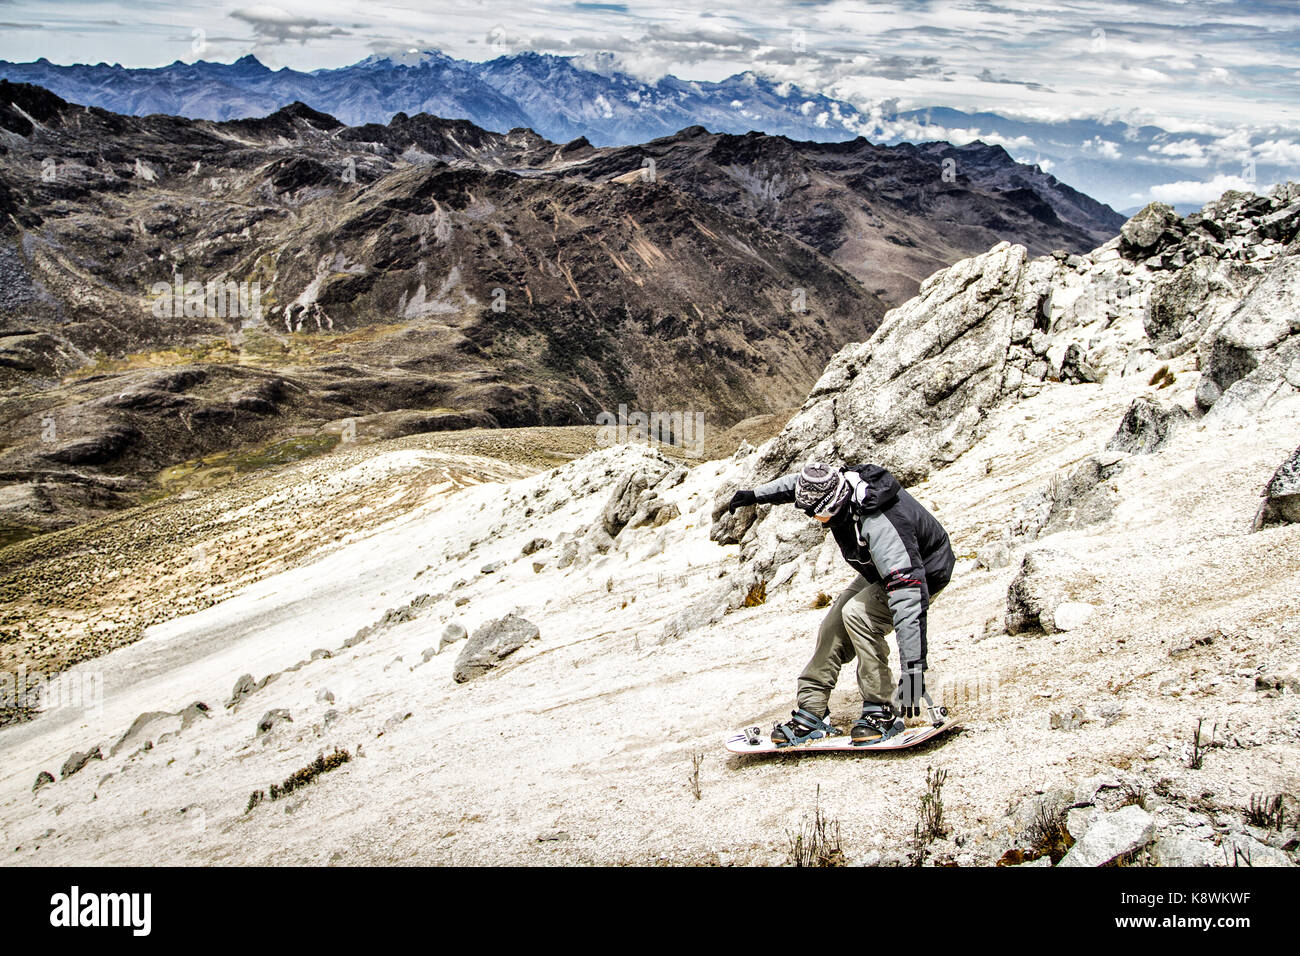 Sandboarding on the summit of Pico Pan de Azucar, the highest place to practice sandboard in the world (4,680 meters). - Stock Image